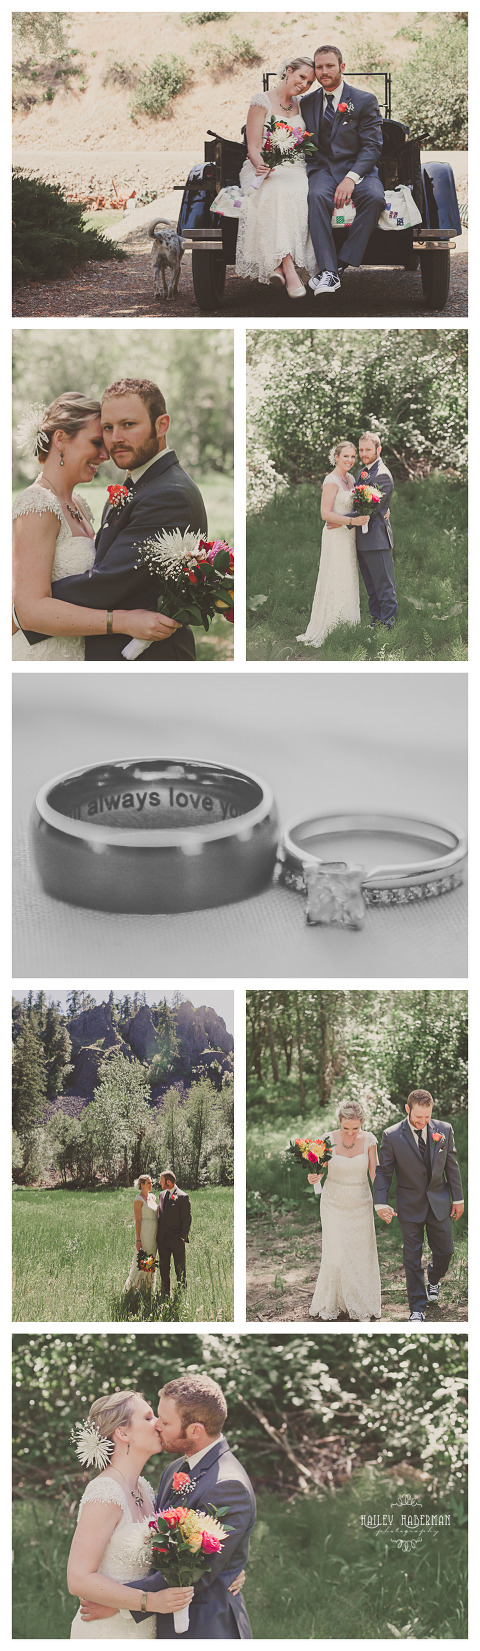 Vintage Mountain Wedding in Manastash Canyon near Ellensburg Wa photographed by Hailey Haberman Wedding Photographer